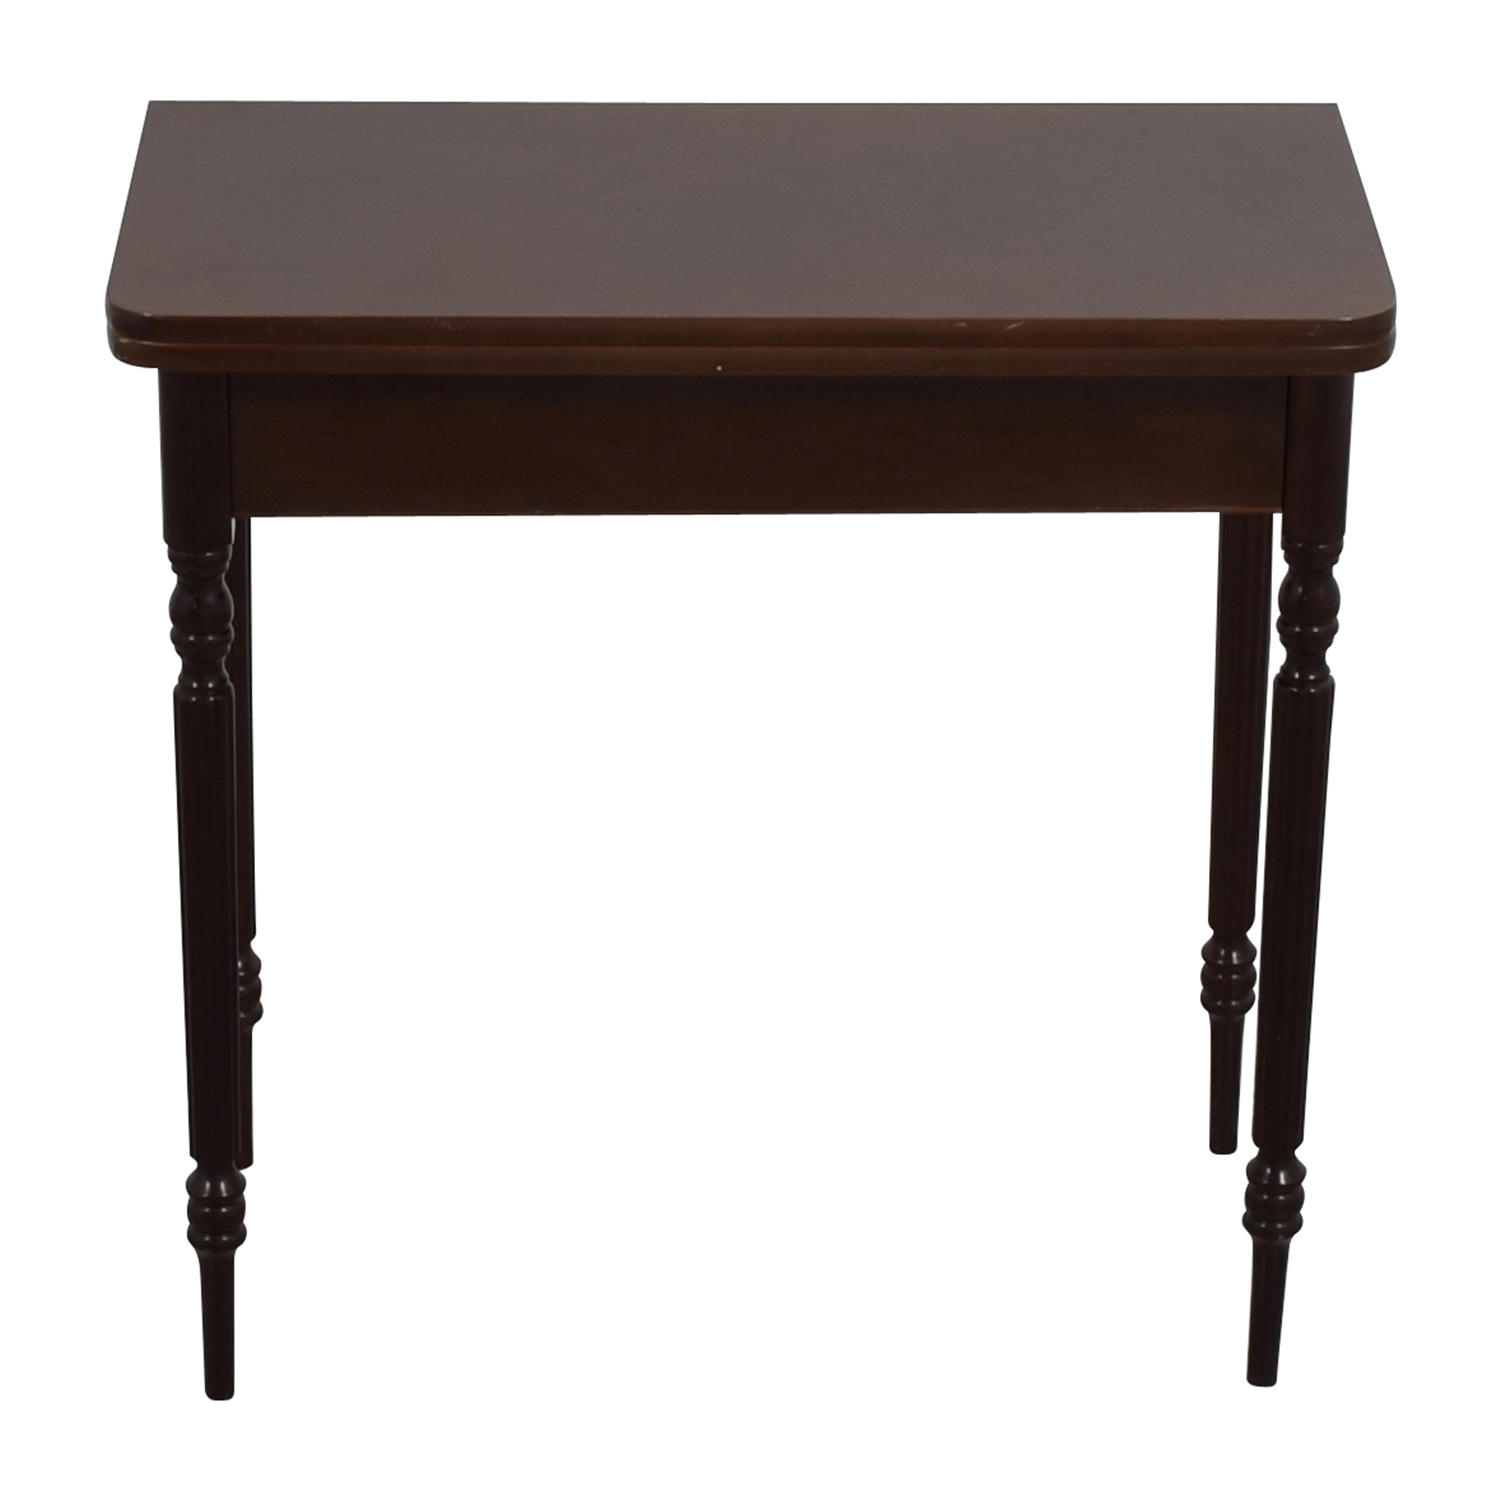 Small Wood Table for Entry Way Brown